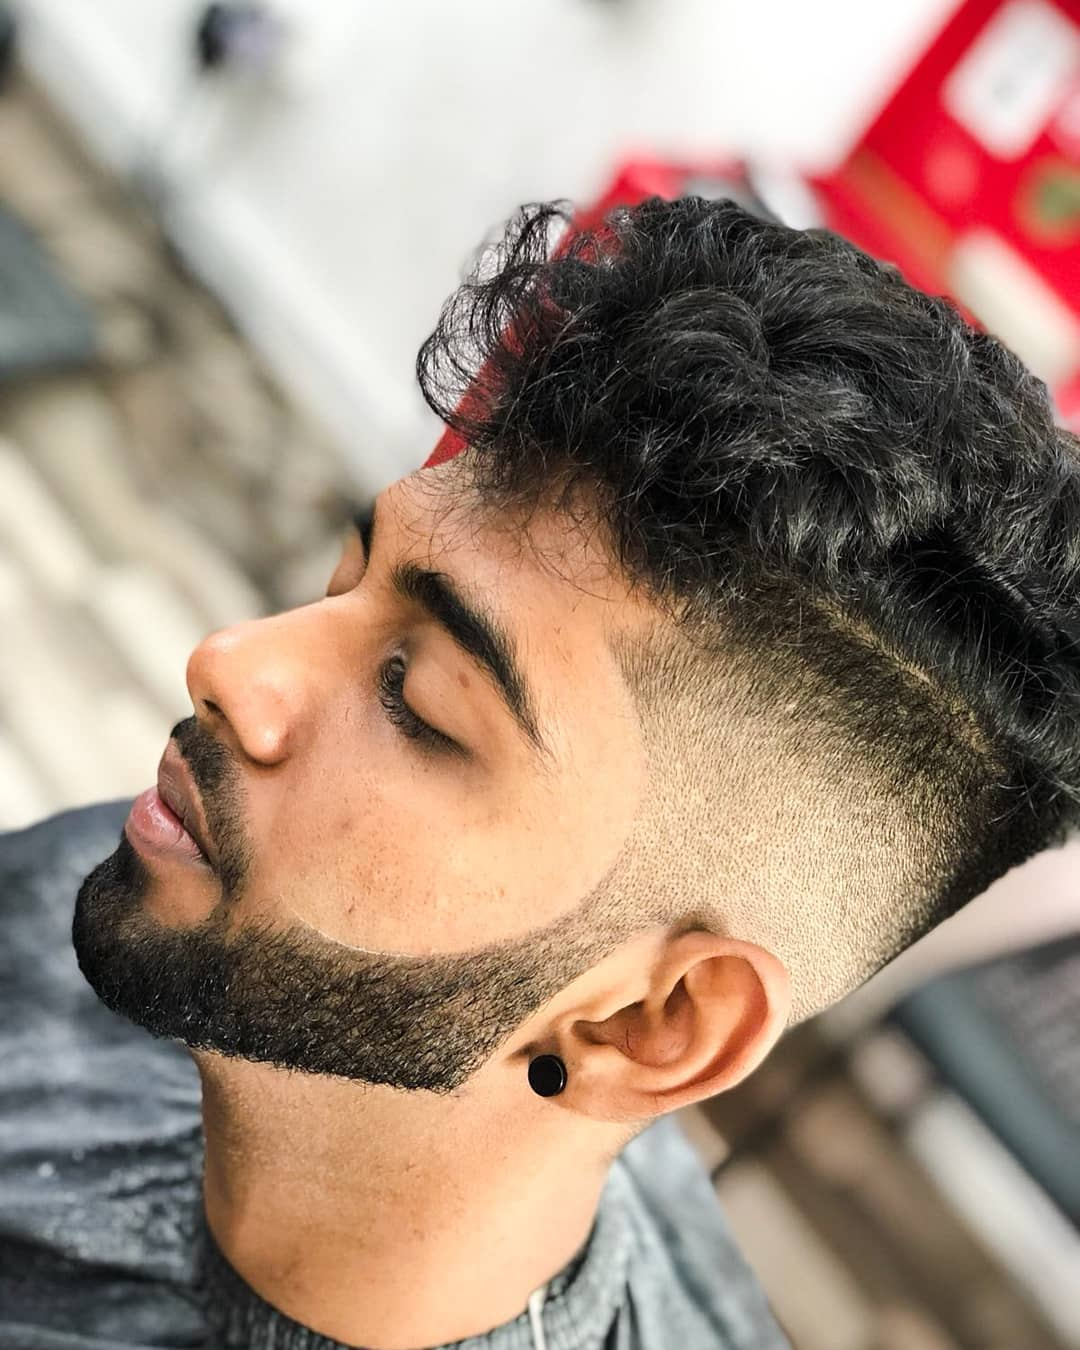 16/1/2016· make sure to get any stray hairs that may be sticking out the sides or bottom. 10 Undercut Hairstyles For Guys In 2021 With New Variations